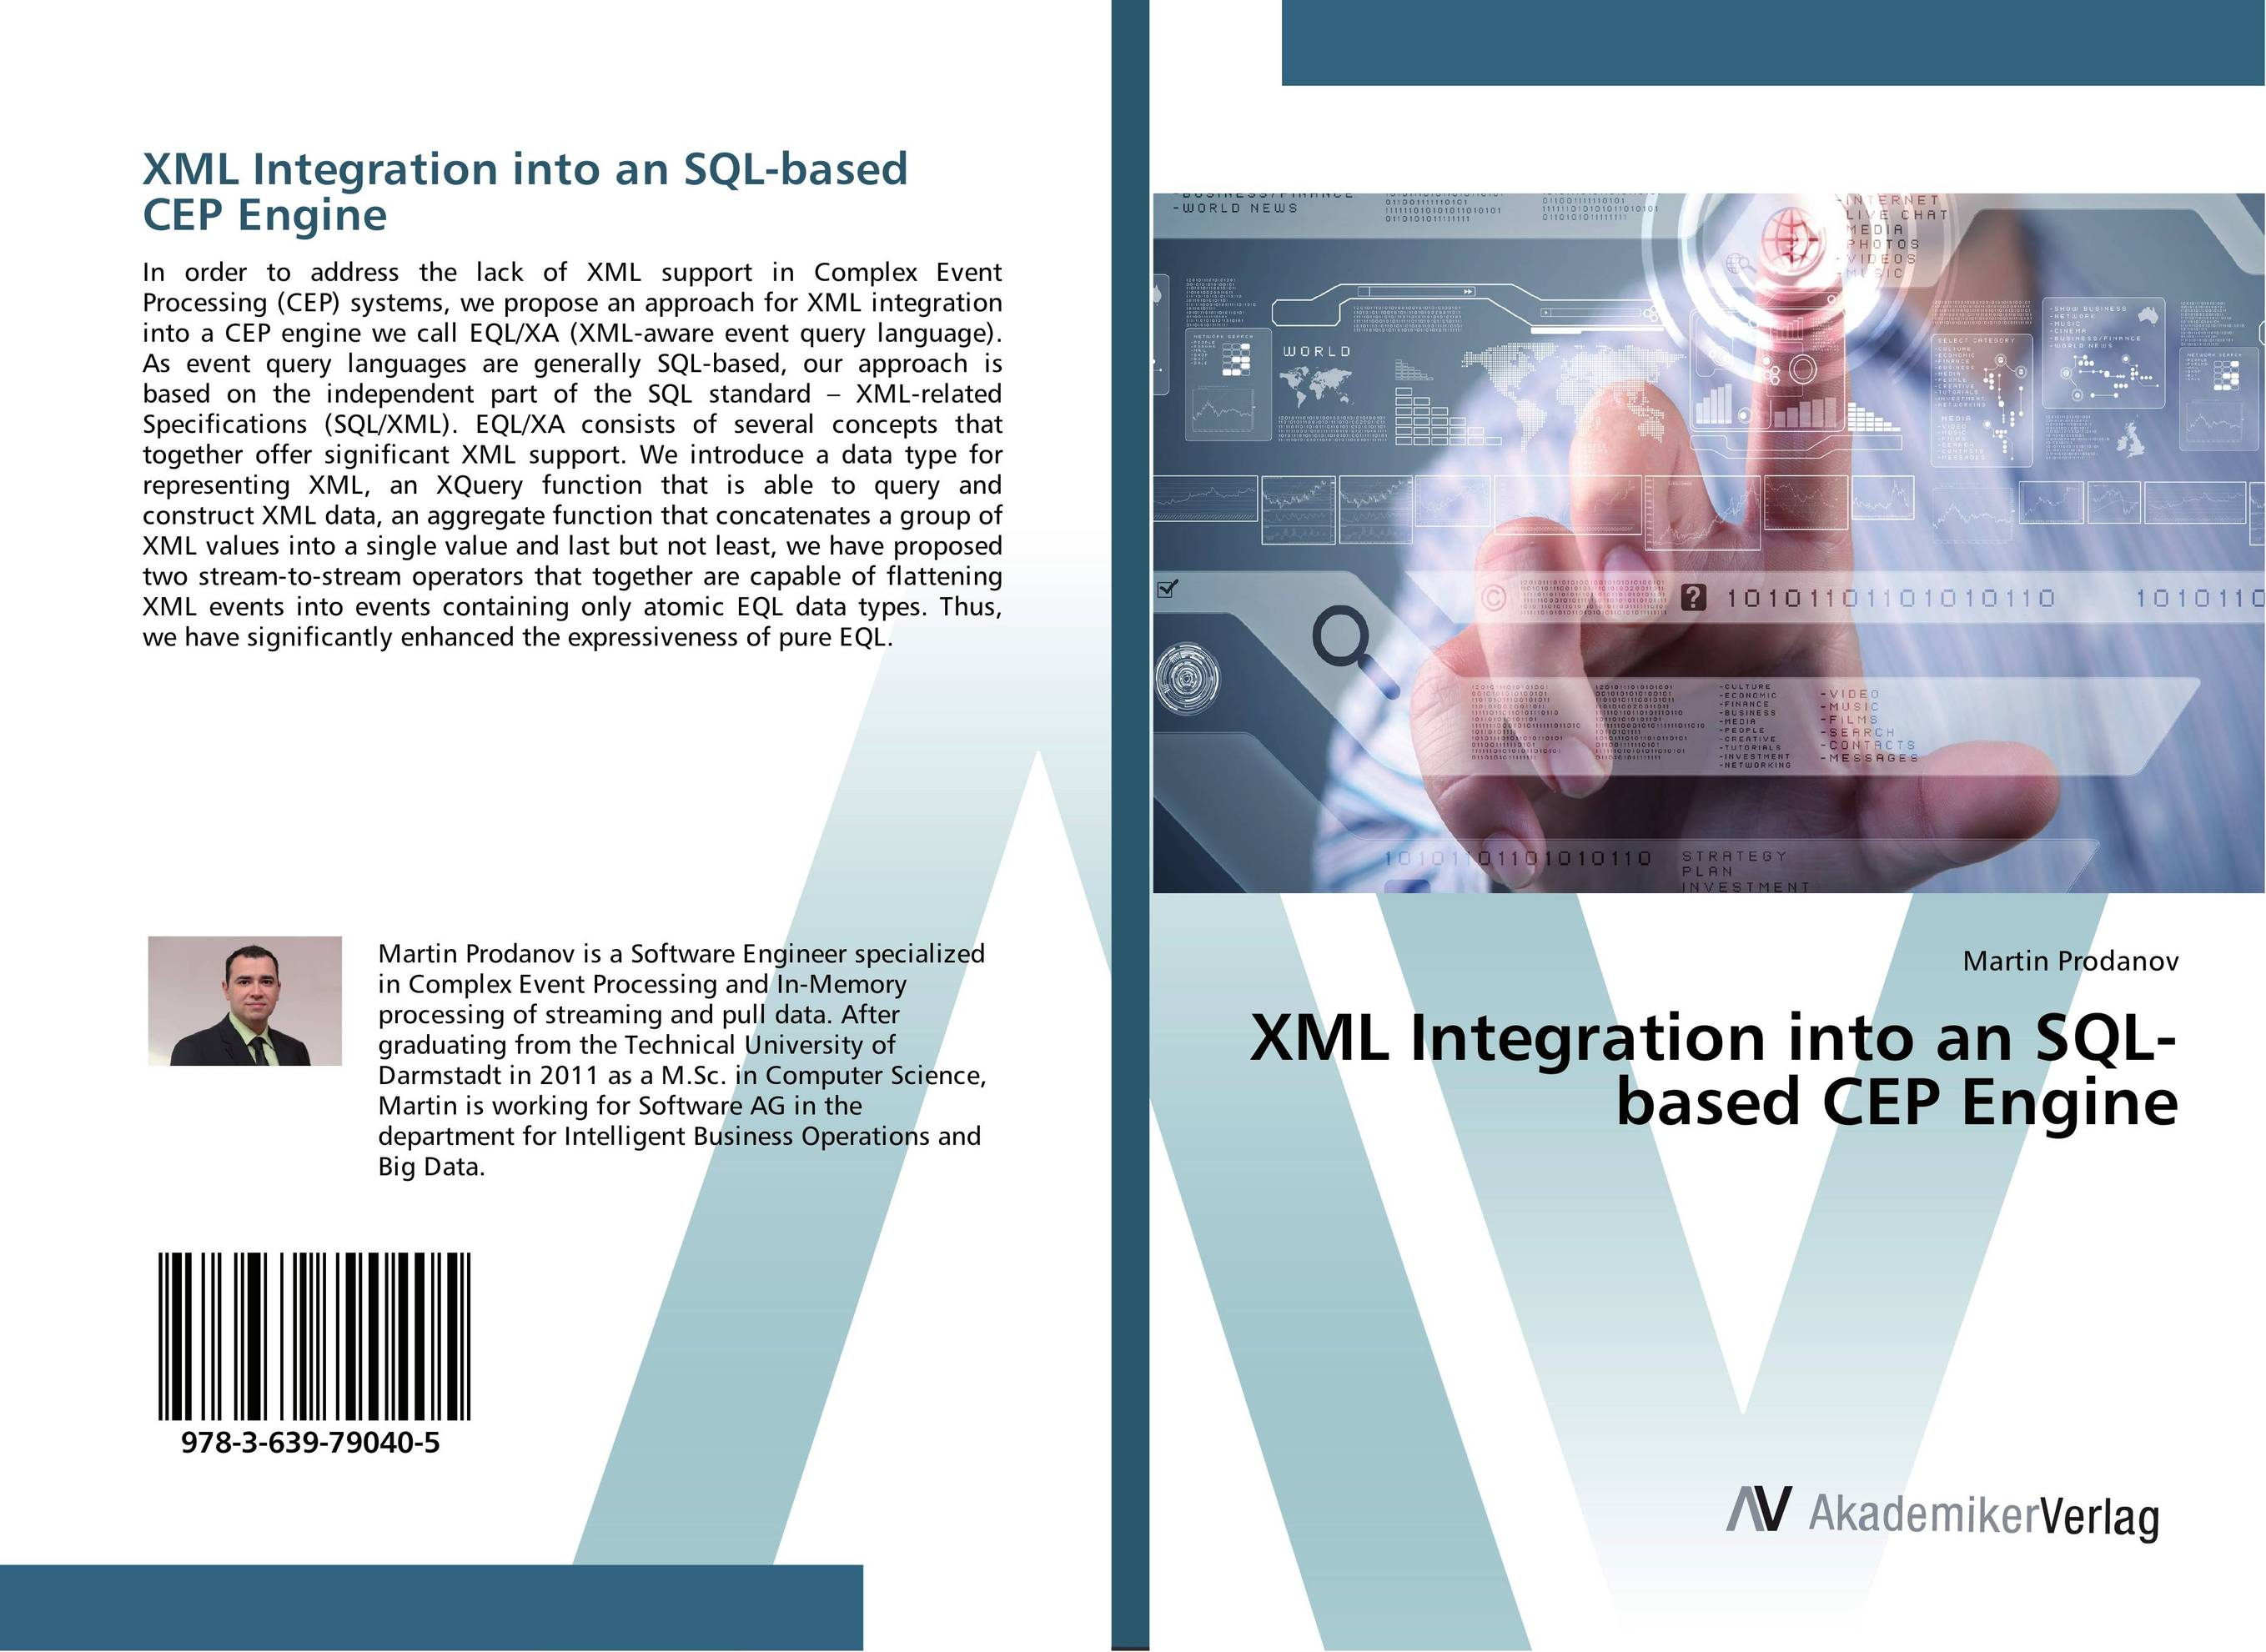 XML Integration into an SQL-based CEP Engine sitemap 44 xml